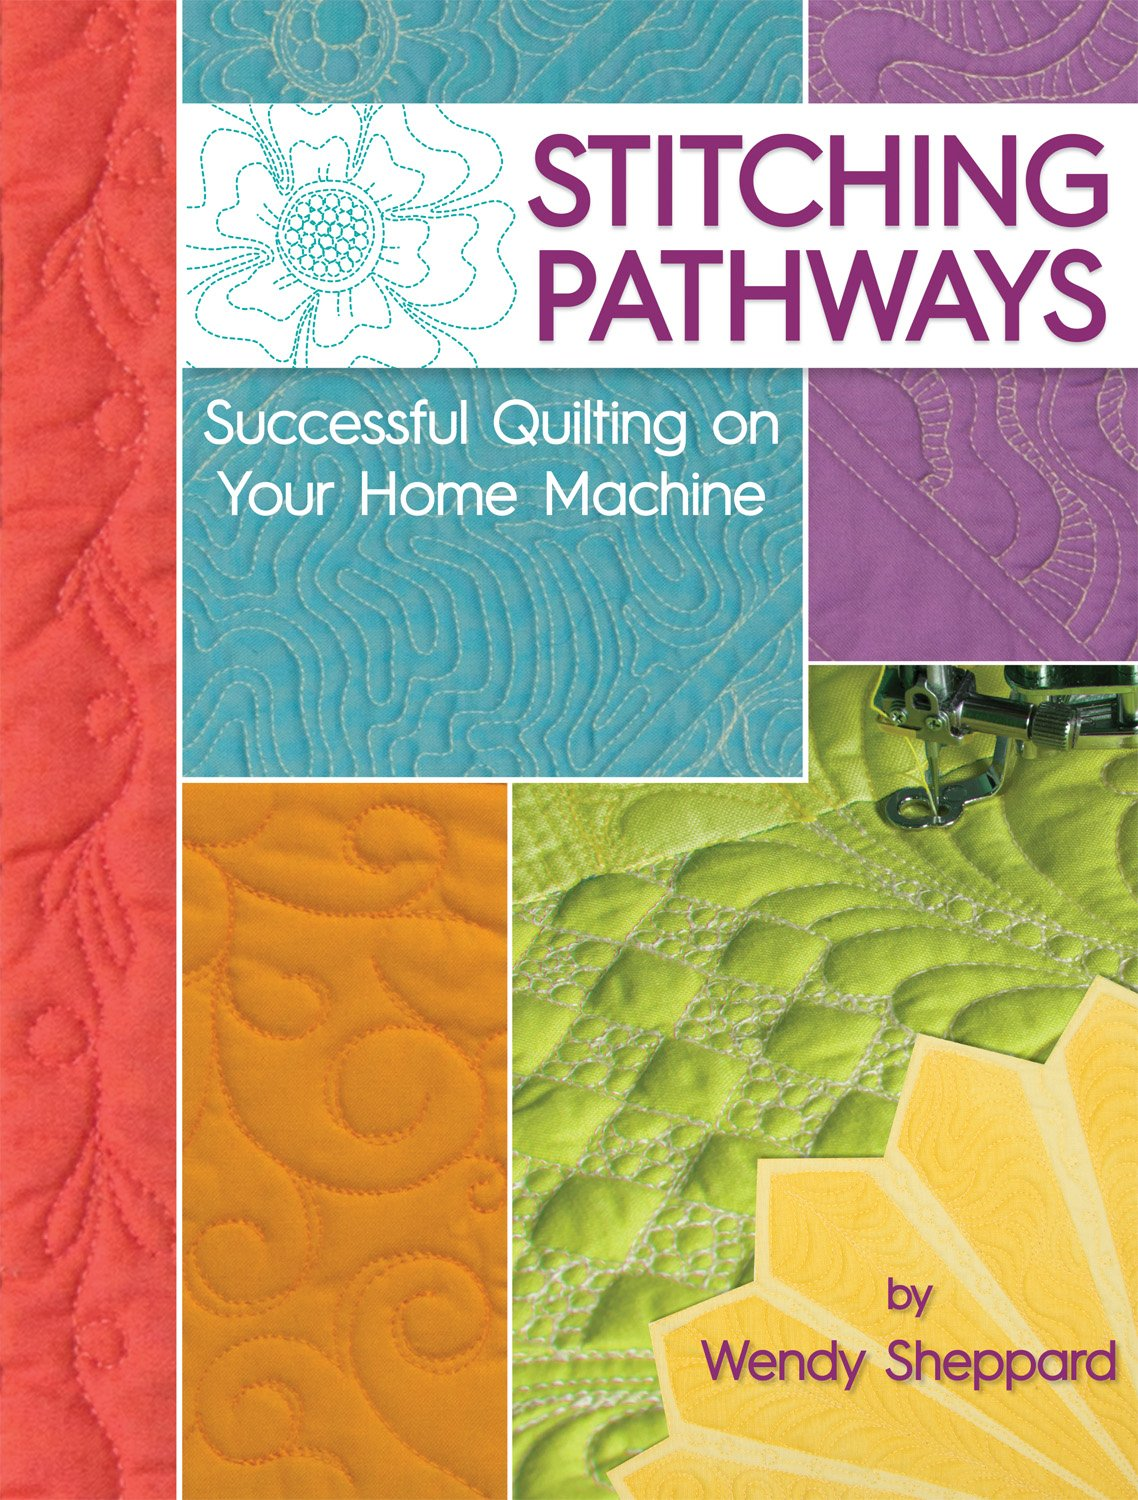 Stitching Pathways: Successful Quilting on your Home Machine (Landauer Publishing) Beginner-Friendly Step-by-Step Instructions, Expert Tips, Techniques for Straight Line and Free-Motion Quilting